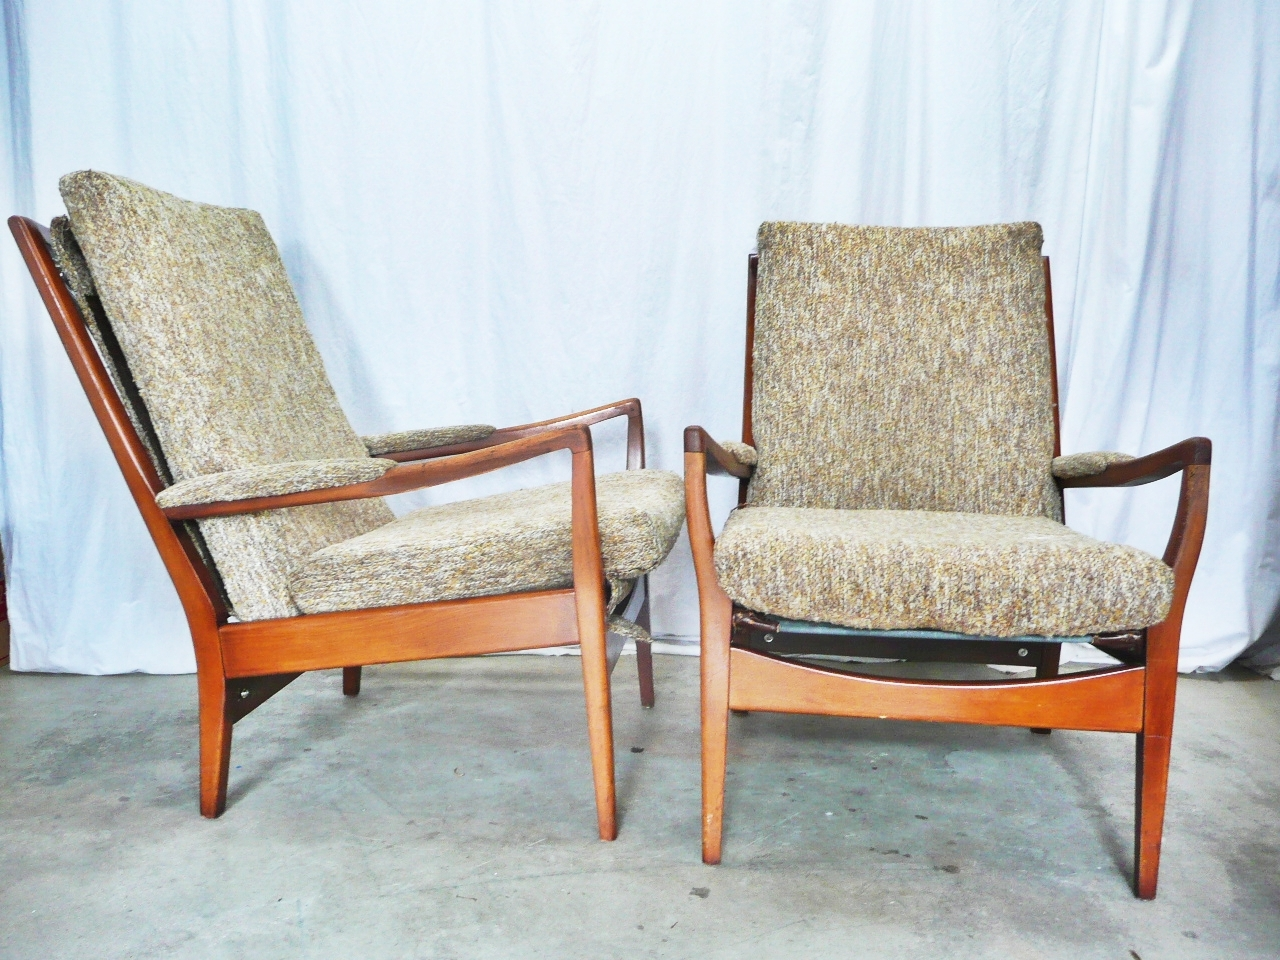 Excellent Preferred Cintique Armchairs Inside Modern Mid Century Danish Vintage Furniture Shop Used (View 4 of 15)